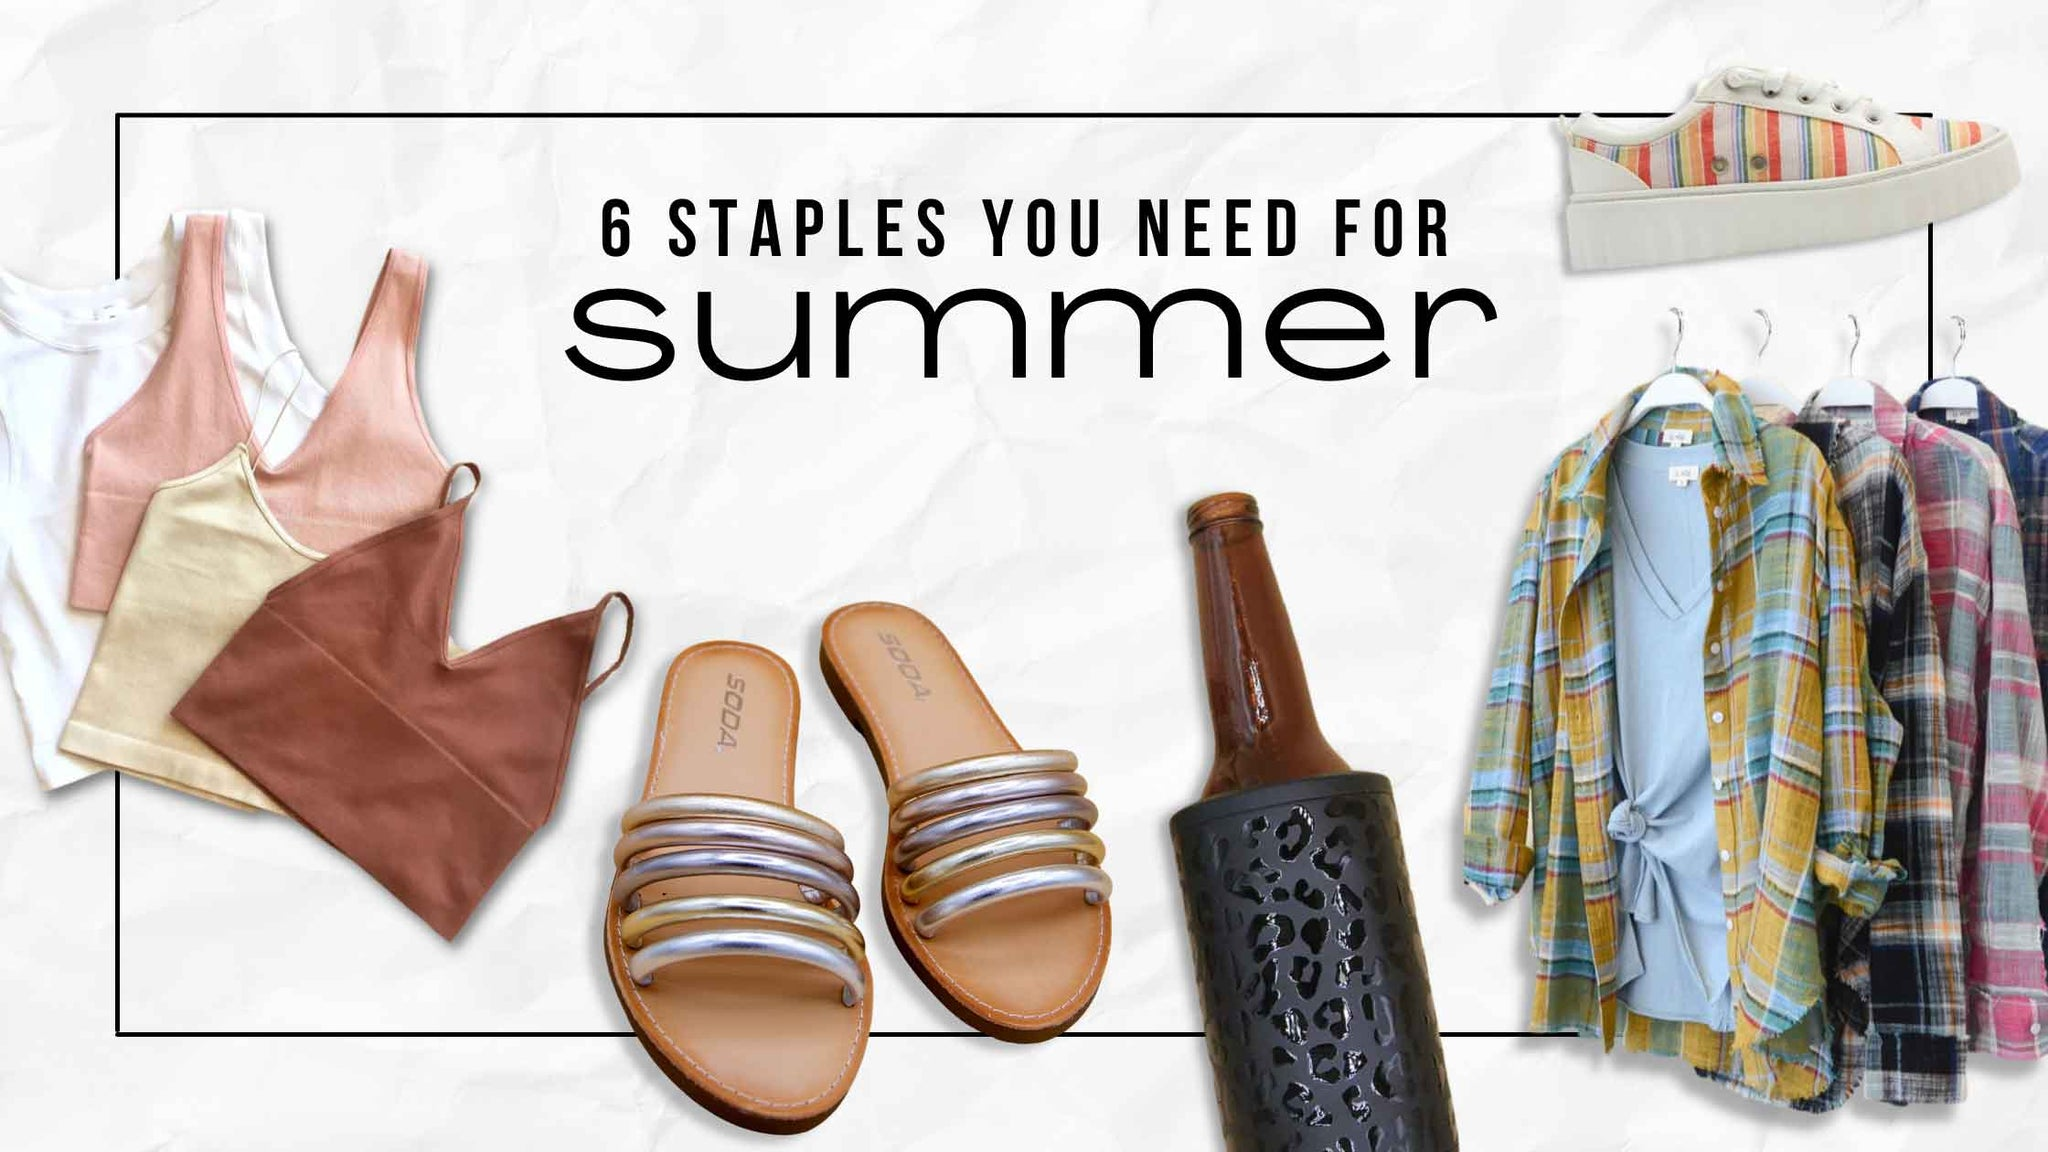 6 Staples You Need for Summer